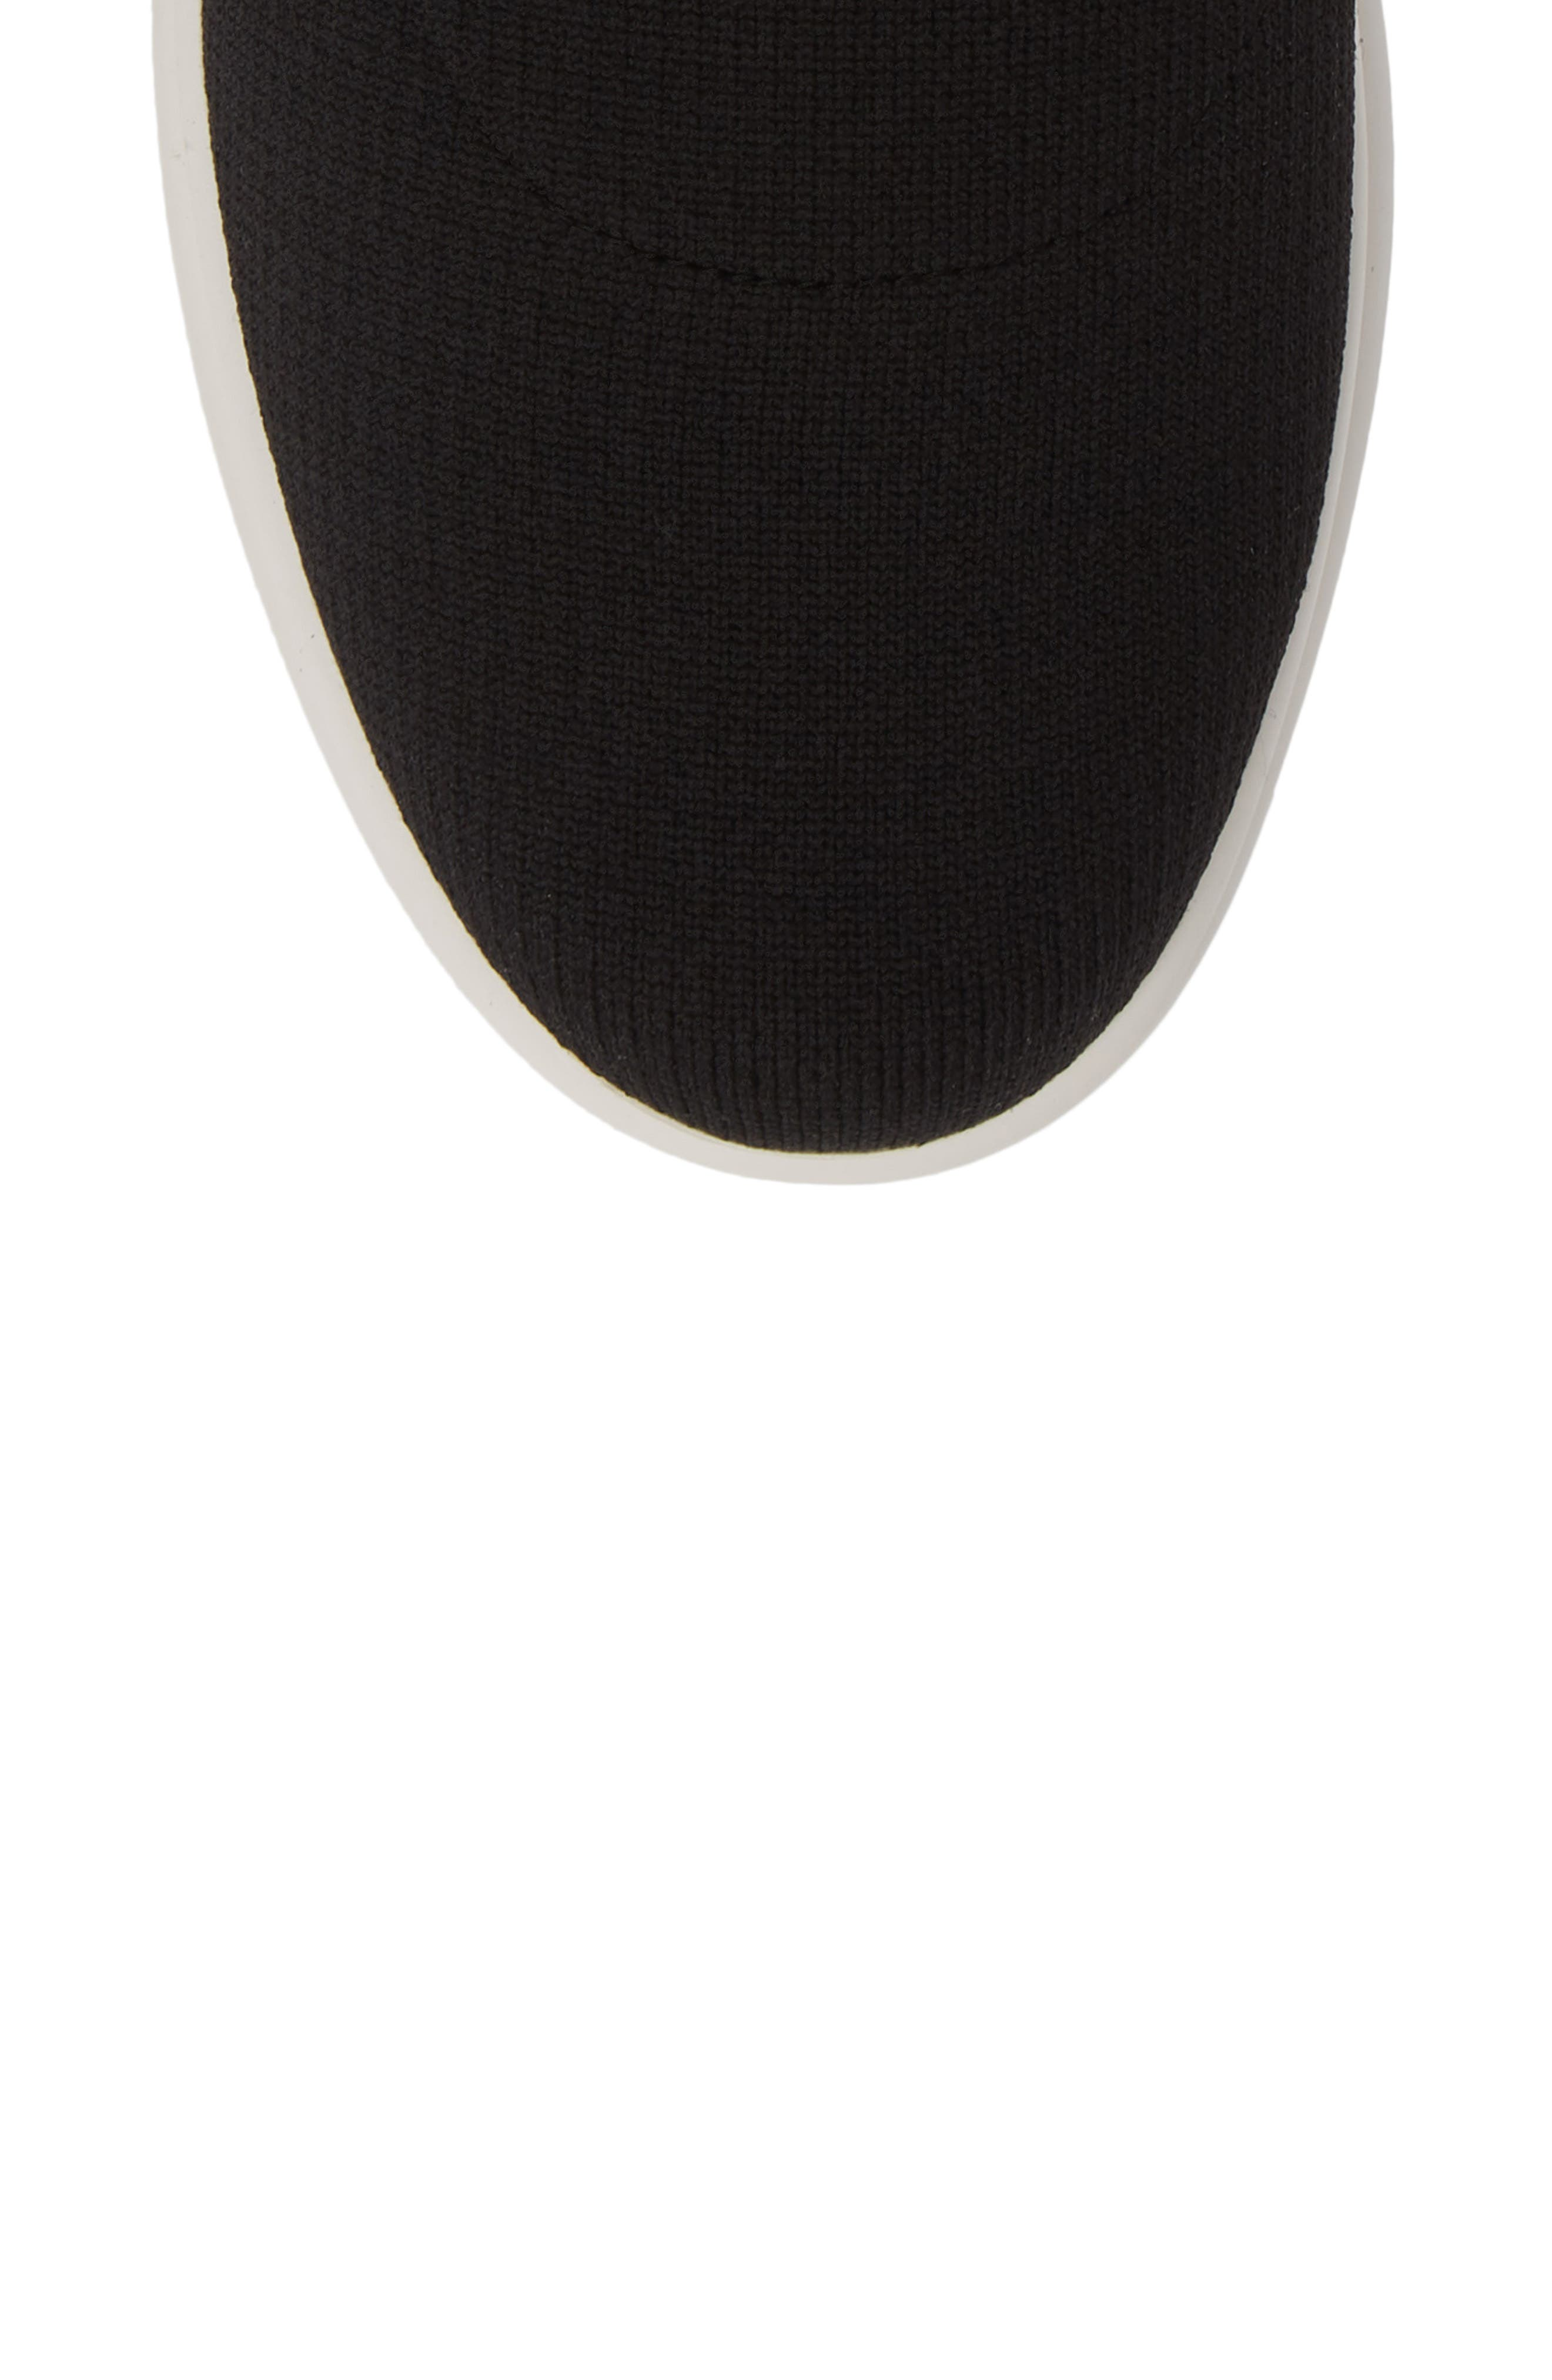 LINEA PAOLO, Gale Sneaker, Alternate thumbnail 5, color, BLACK KNIT FABRIC